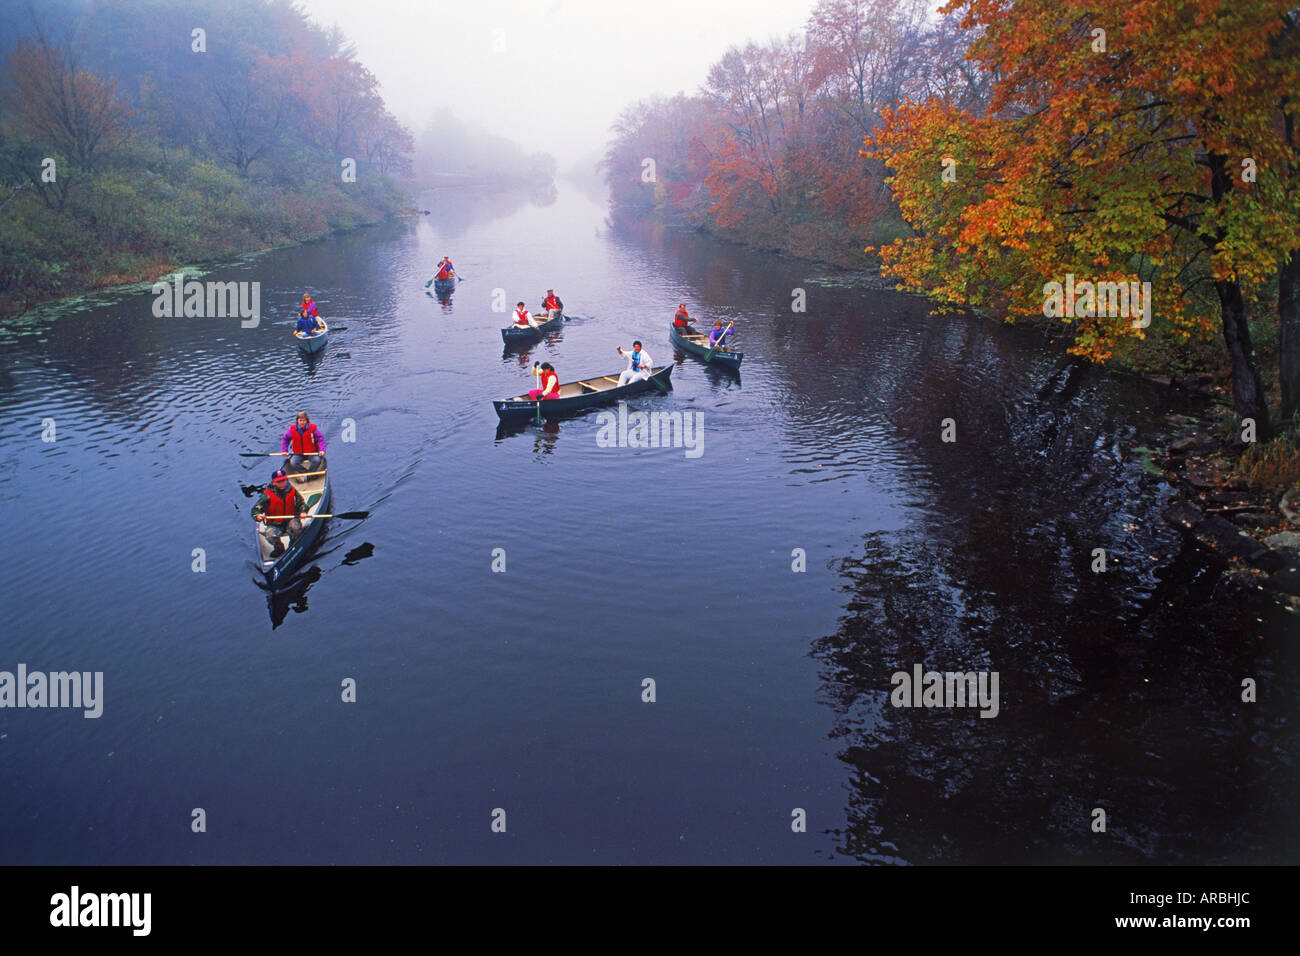 Canoes on the Connecticut River near Dartmouth College at Hanover, New Hampshire Stock Photo